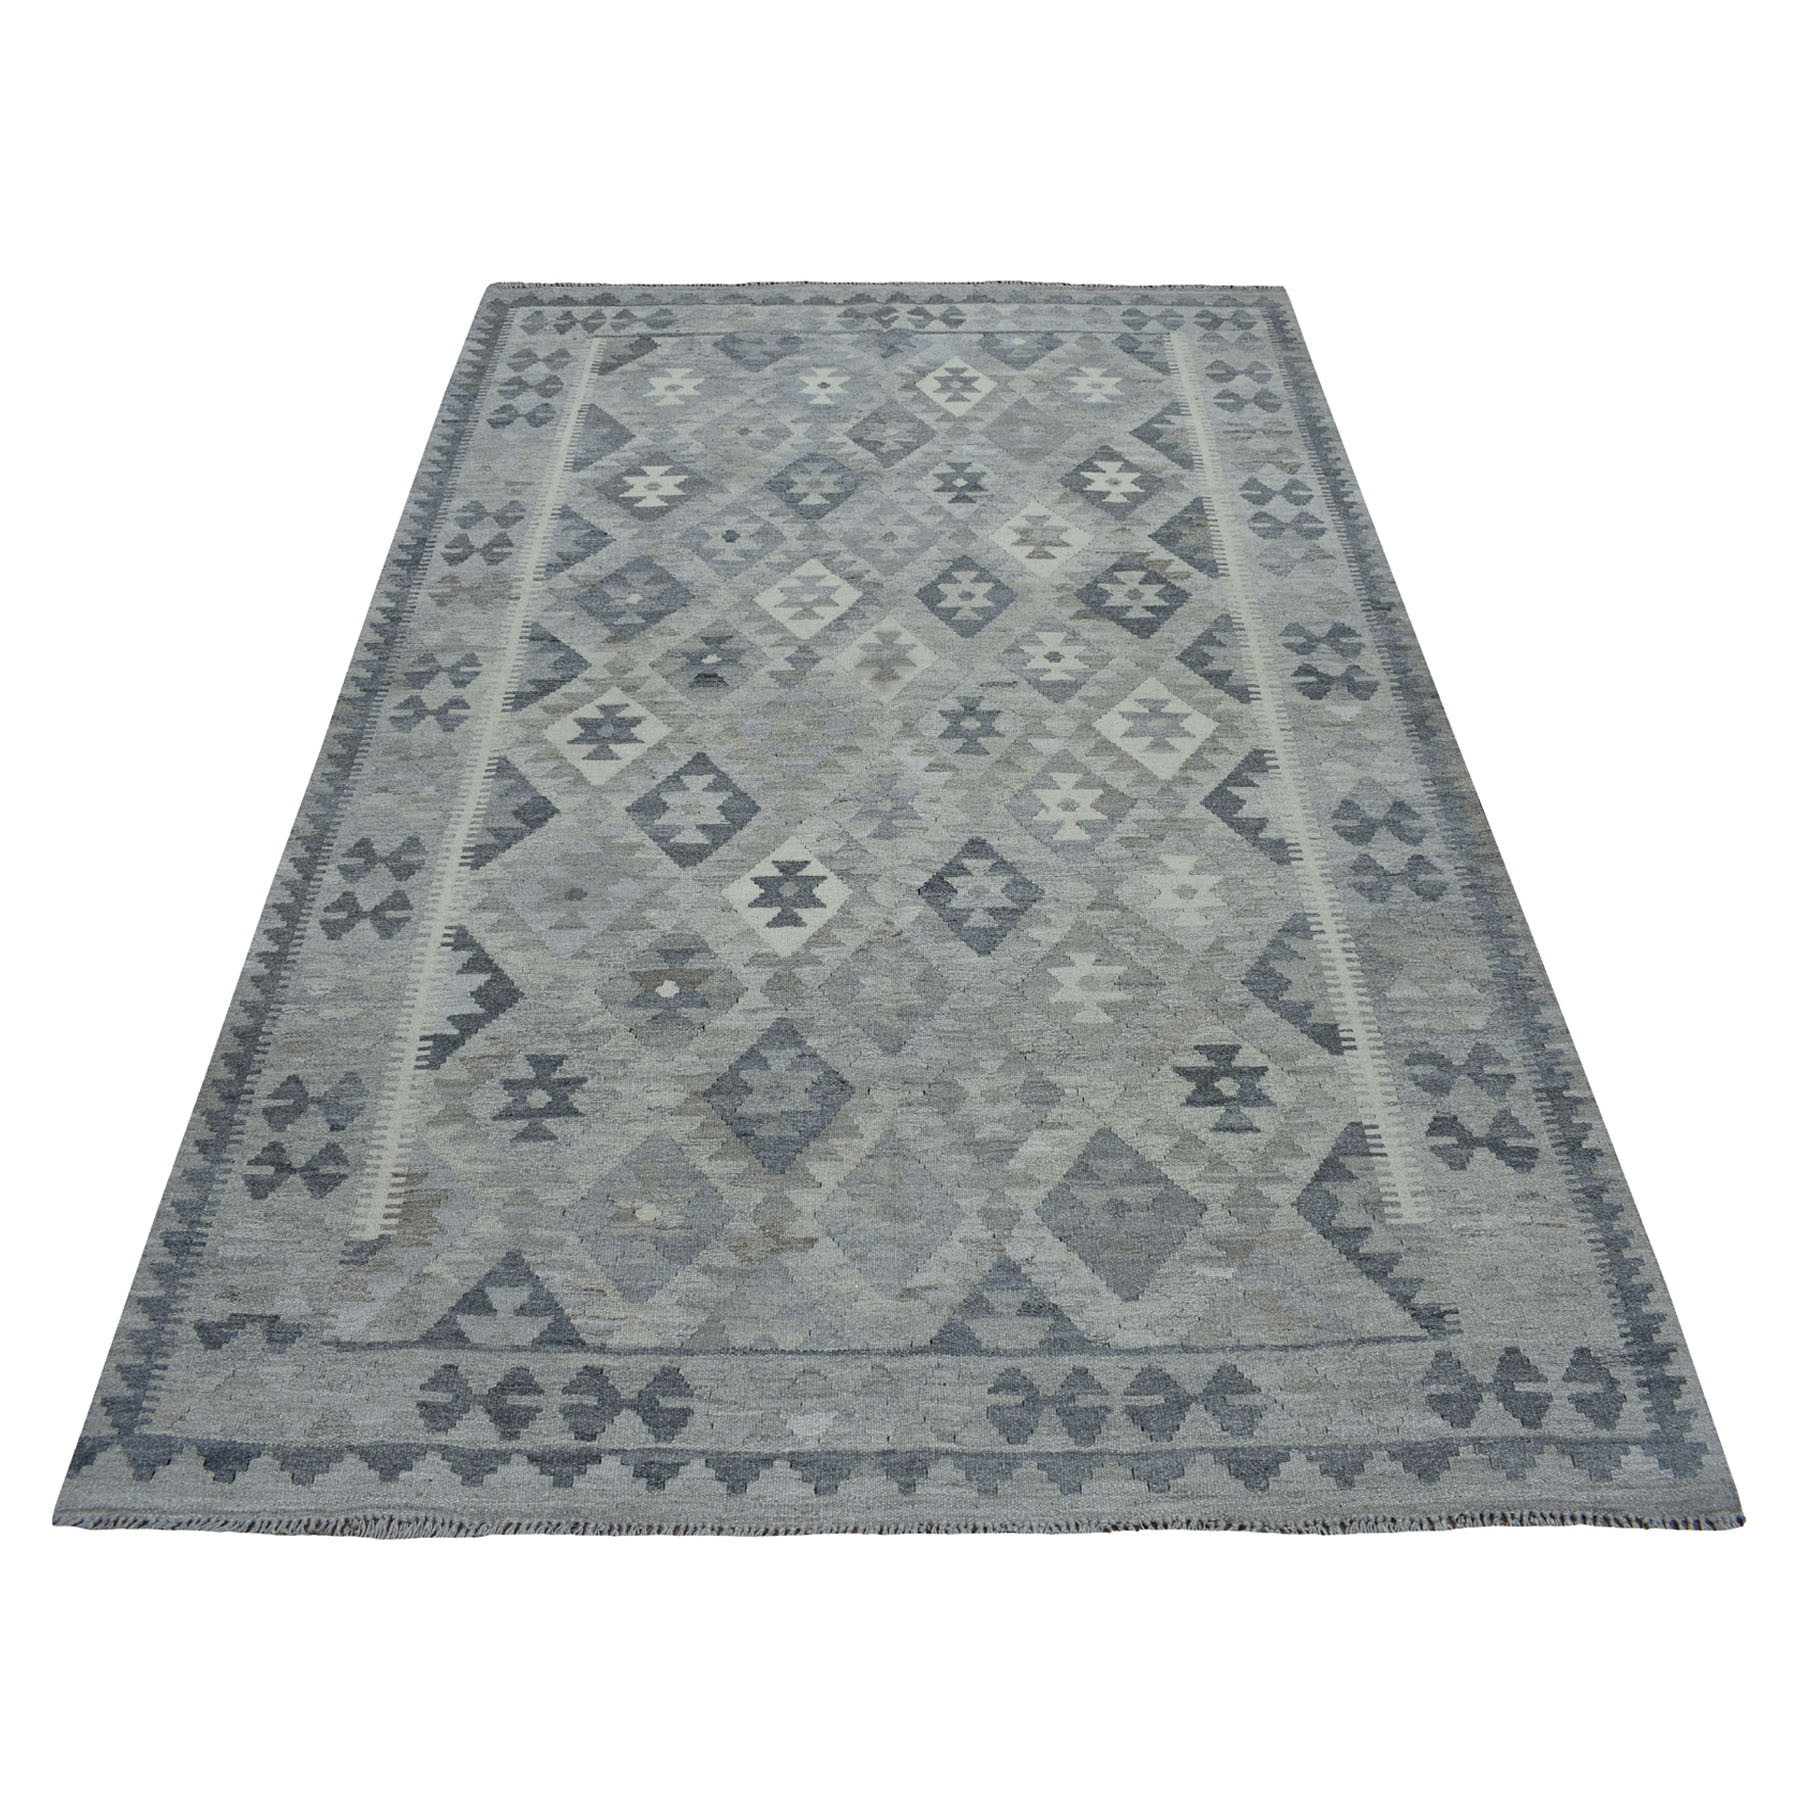 """5'7""""X8' Undyed Natural Wool Afghan Kilim Reversible Hand Woven Oriental Rug moaec0dd"""